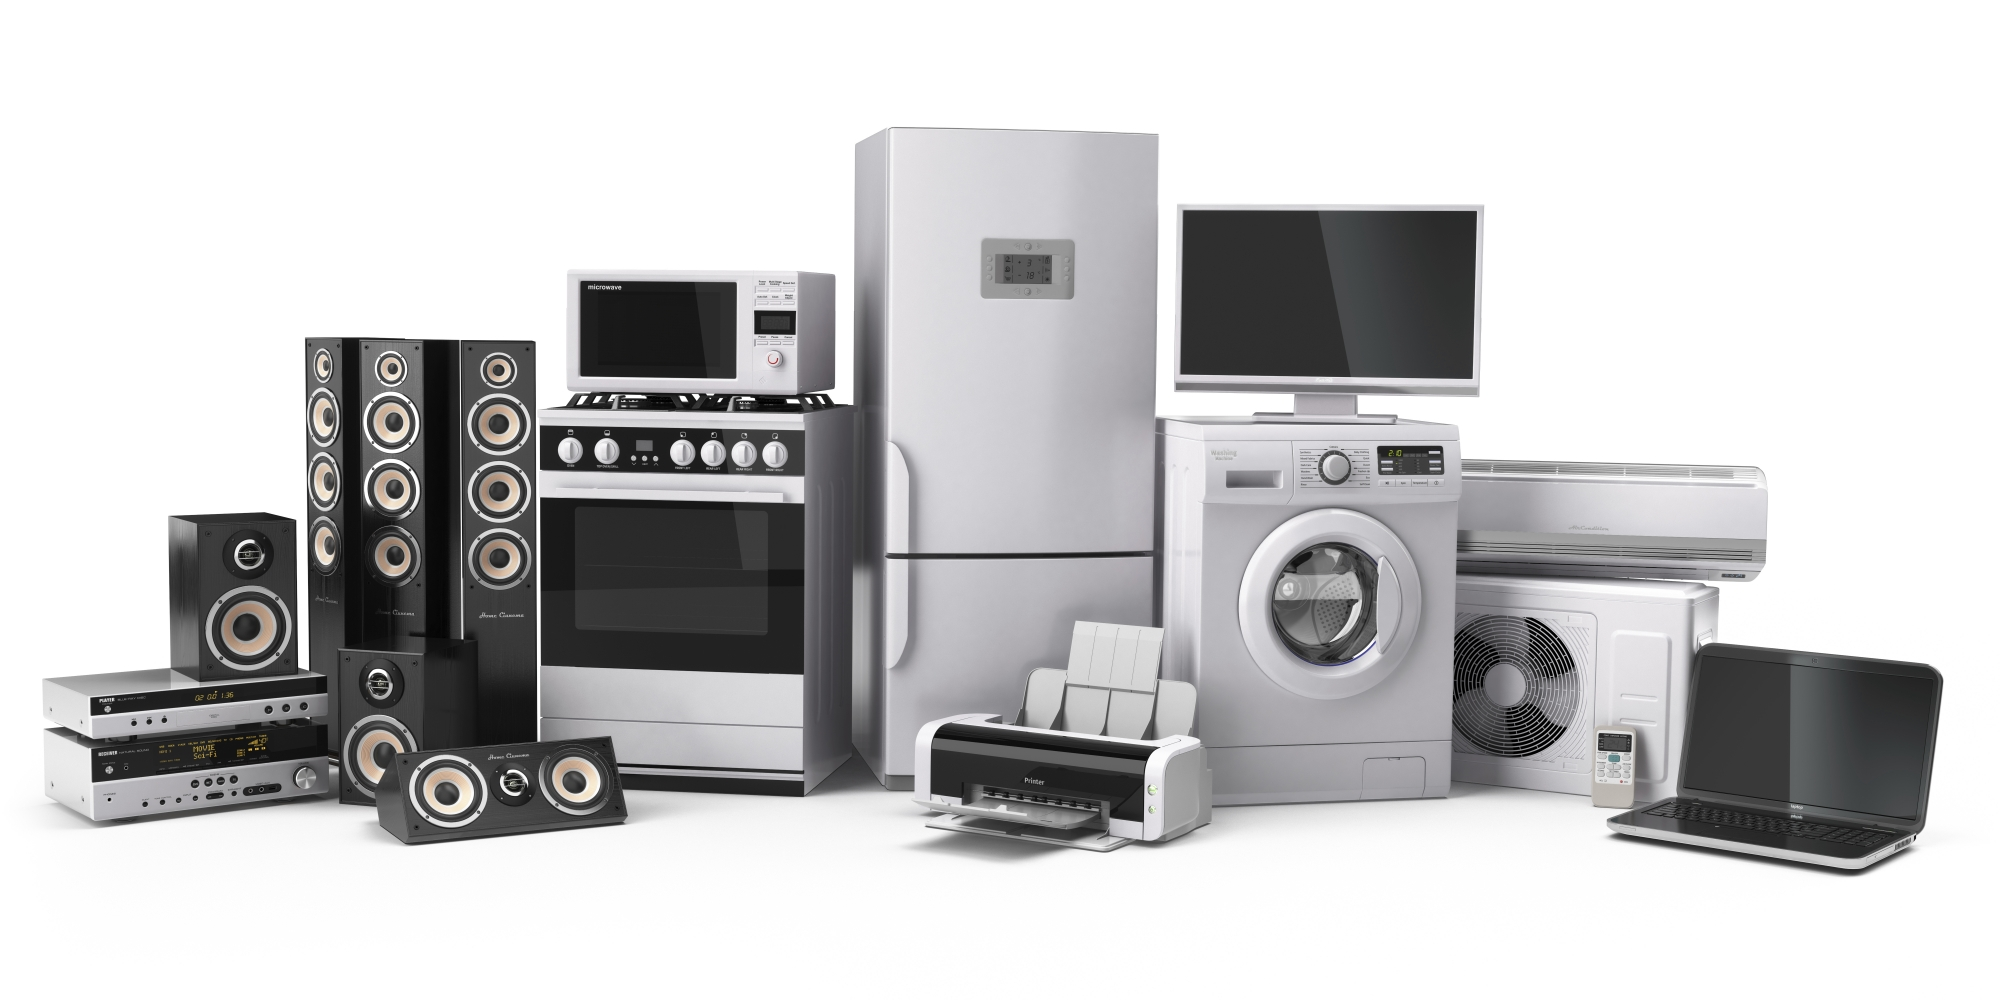 Ask Yourself These Three Questions Before Looking For Washer and Dryer Deals